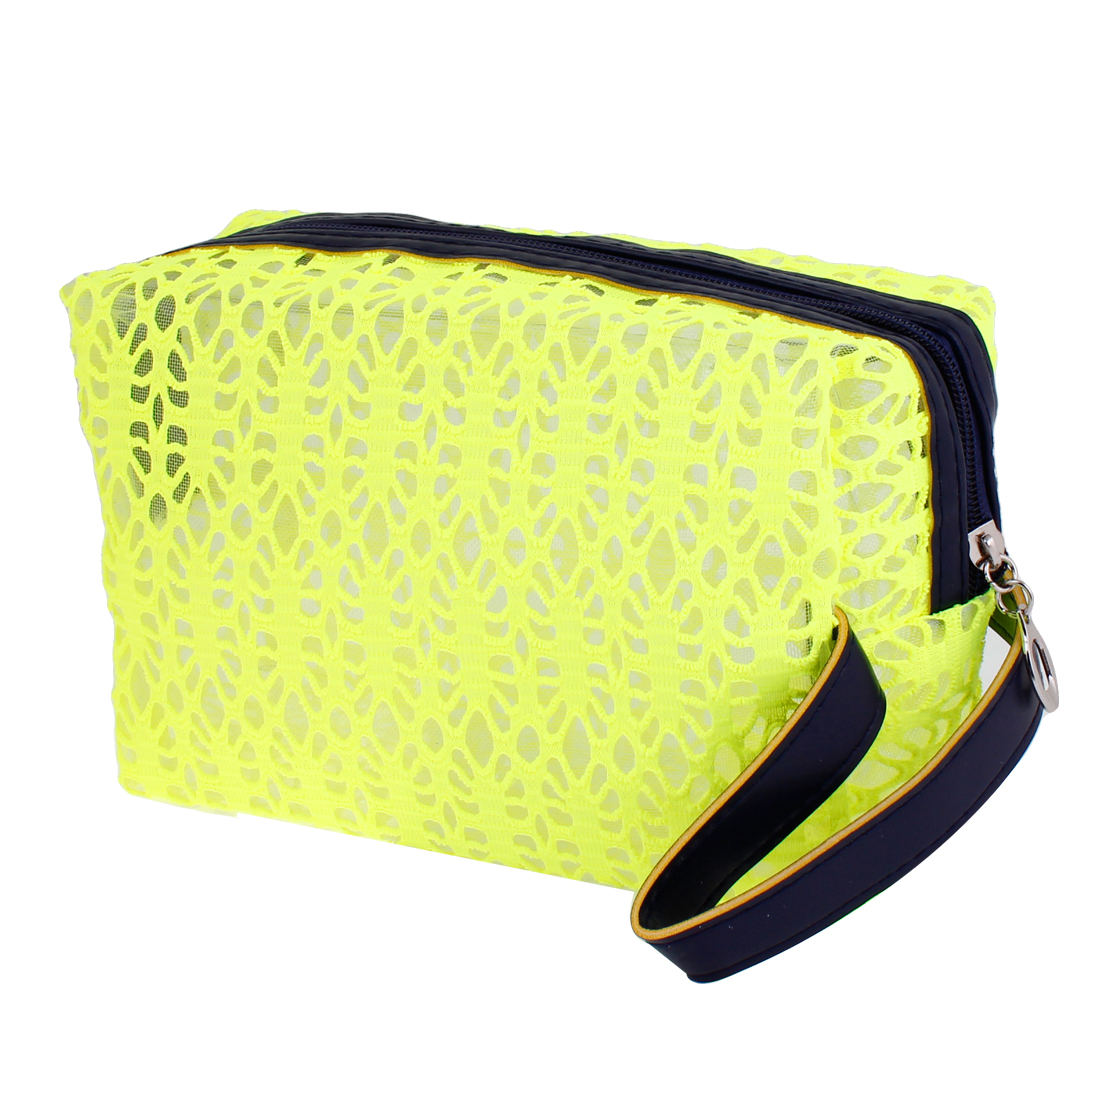 Lady Yellow Green Hollow Out Design Zip Up Cosmetic Bag Pouch Holder w Blue Strap